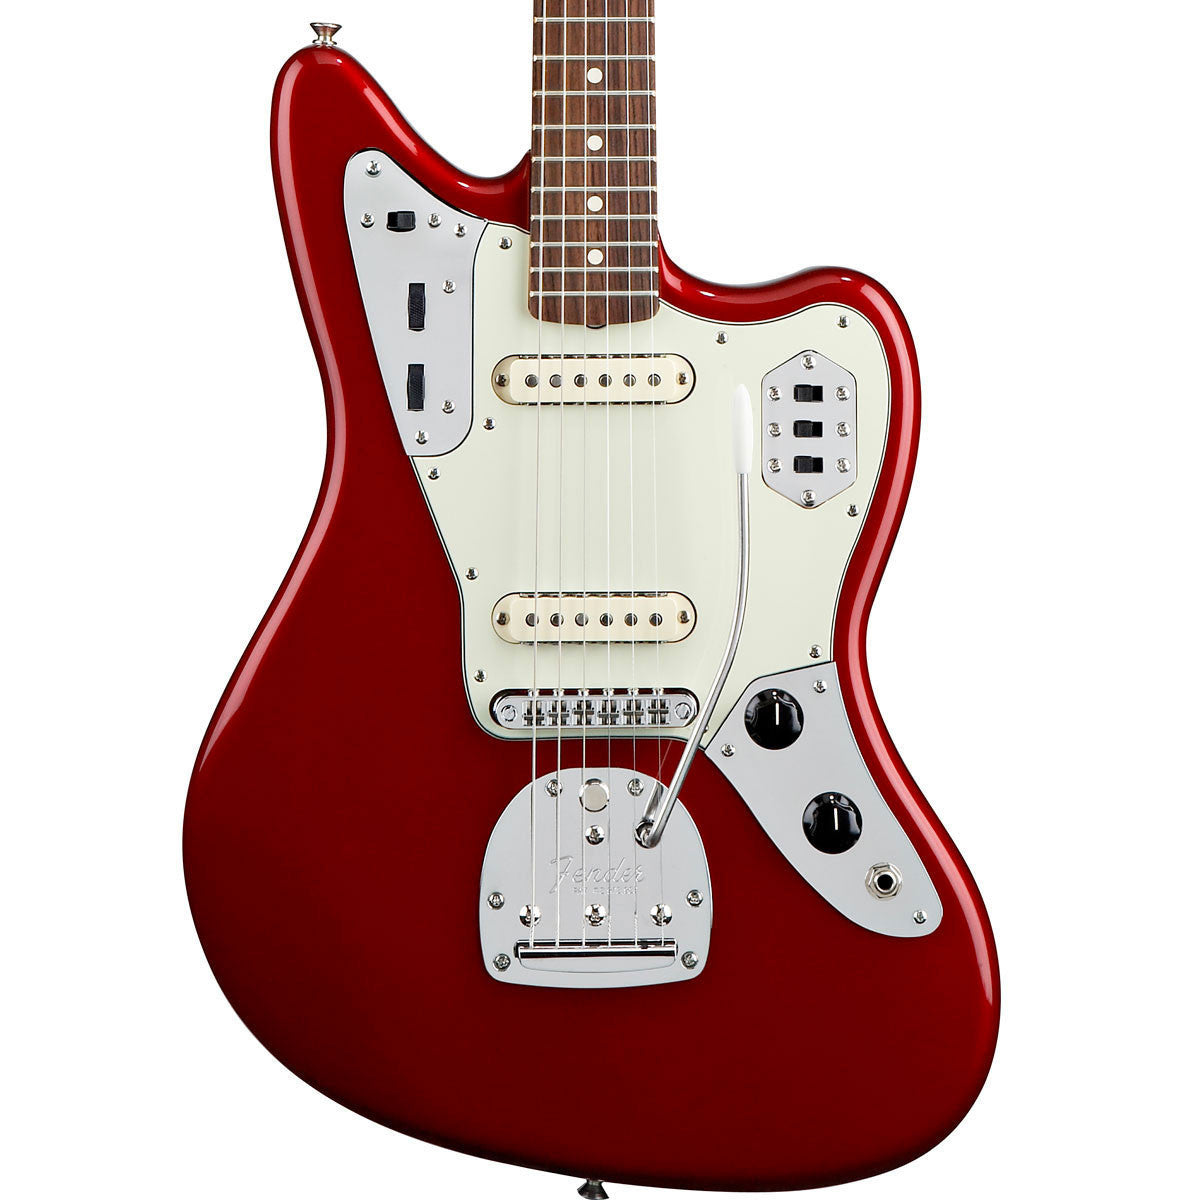 Fender Classic Player Jaguar Special - Rosewood - Candy Apple Red - Vintage Guitar Boutique - 1